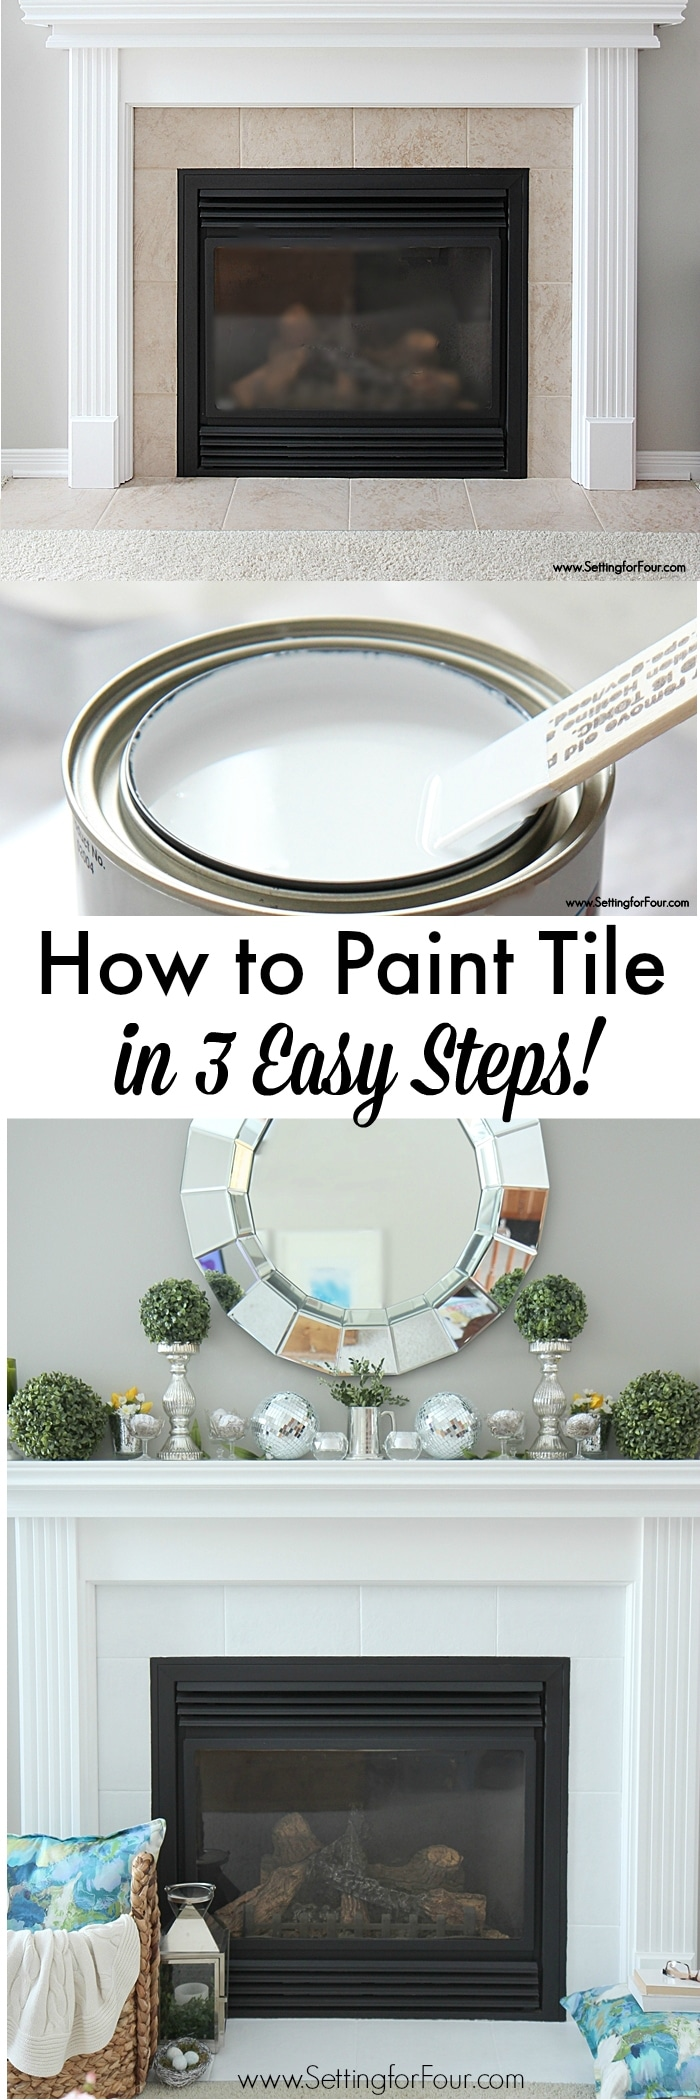 How to Paint Tile - Fireplace Easy Paint Makeover. I